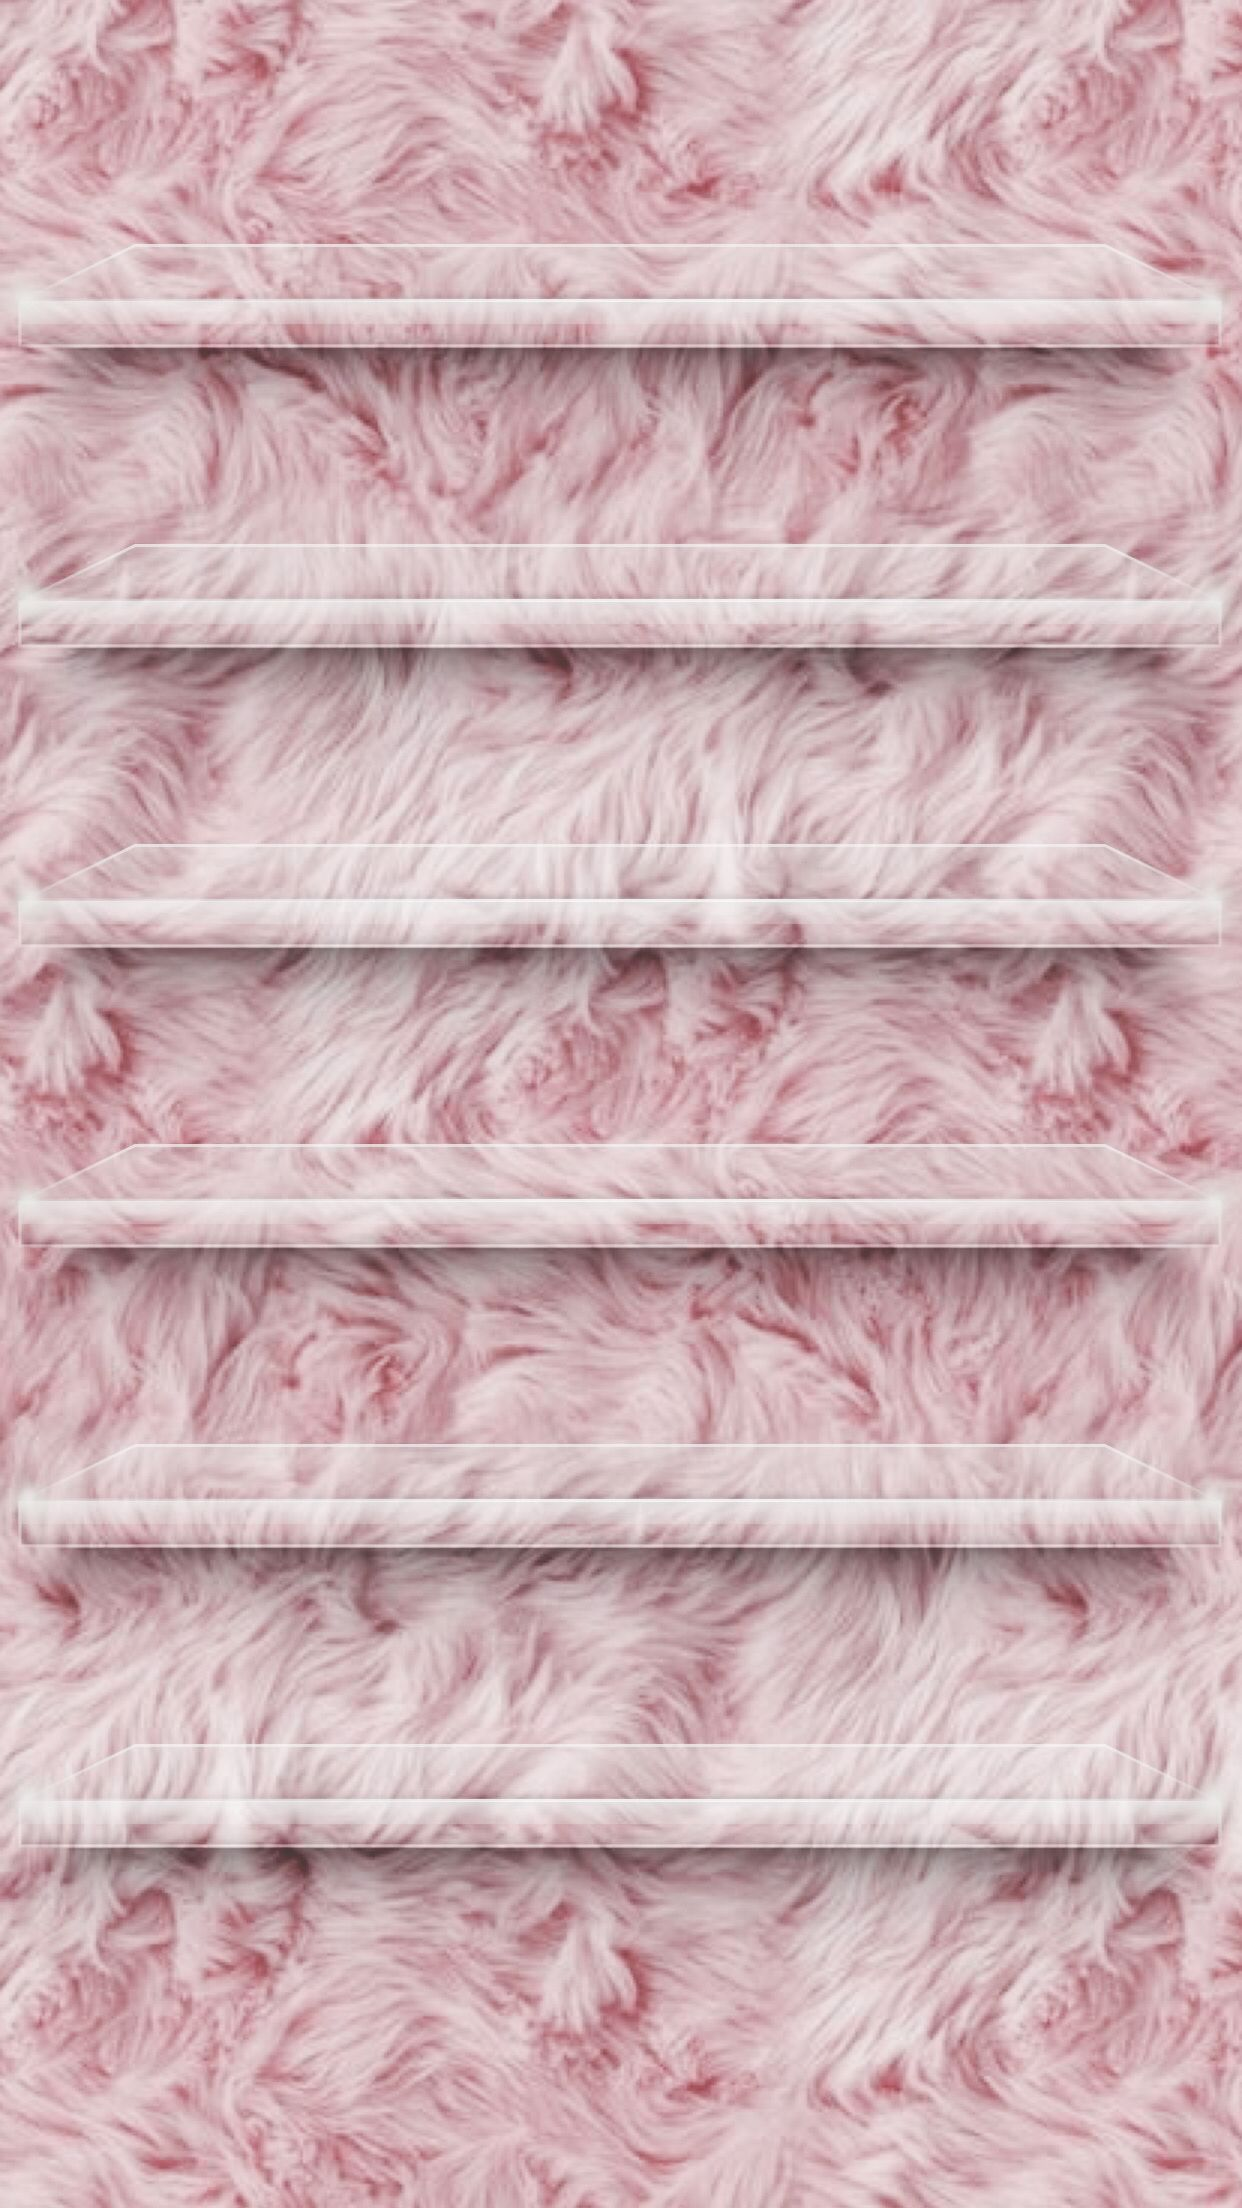 Fuzzy pink home screen phone wallpapers in 2019 - Pink wallpaper for phone ...